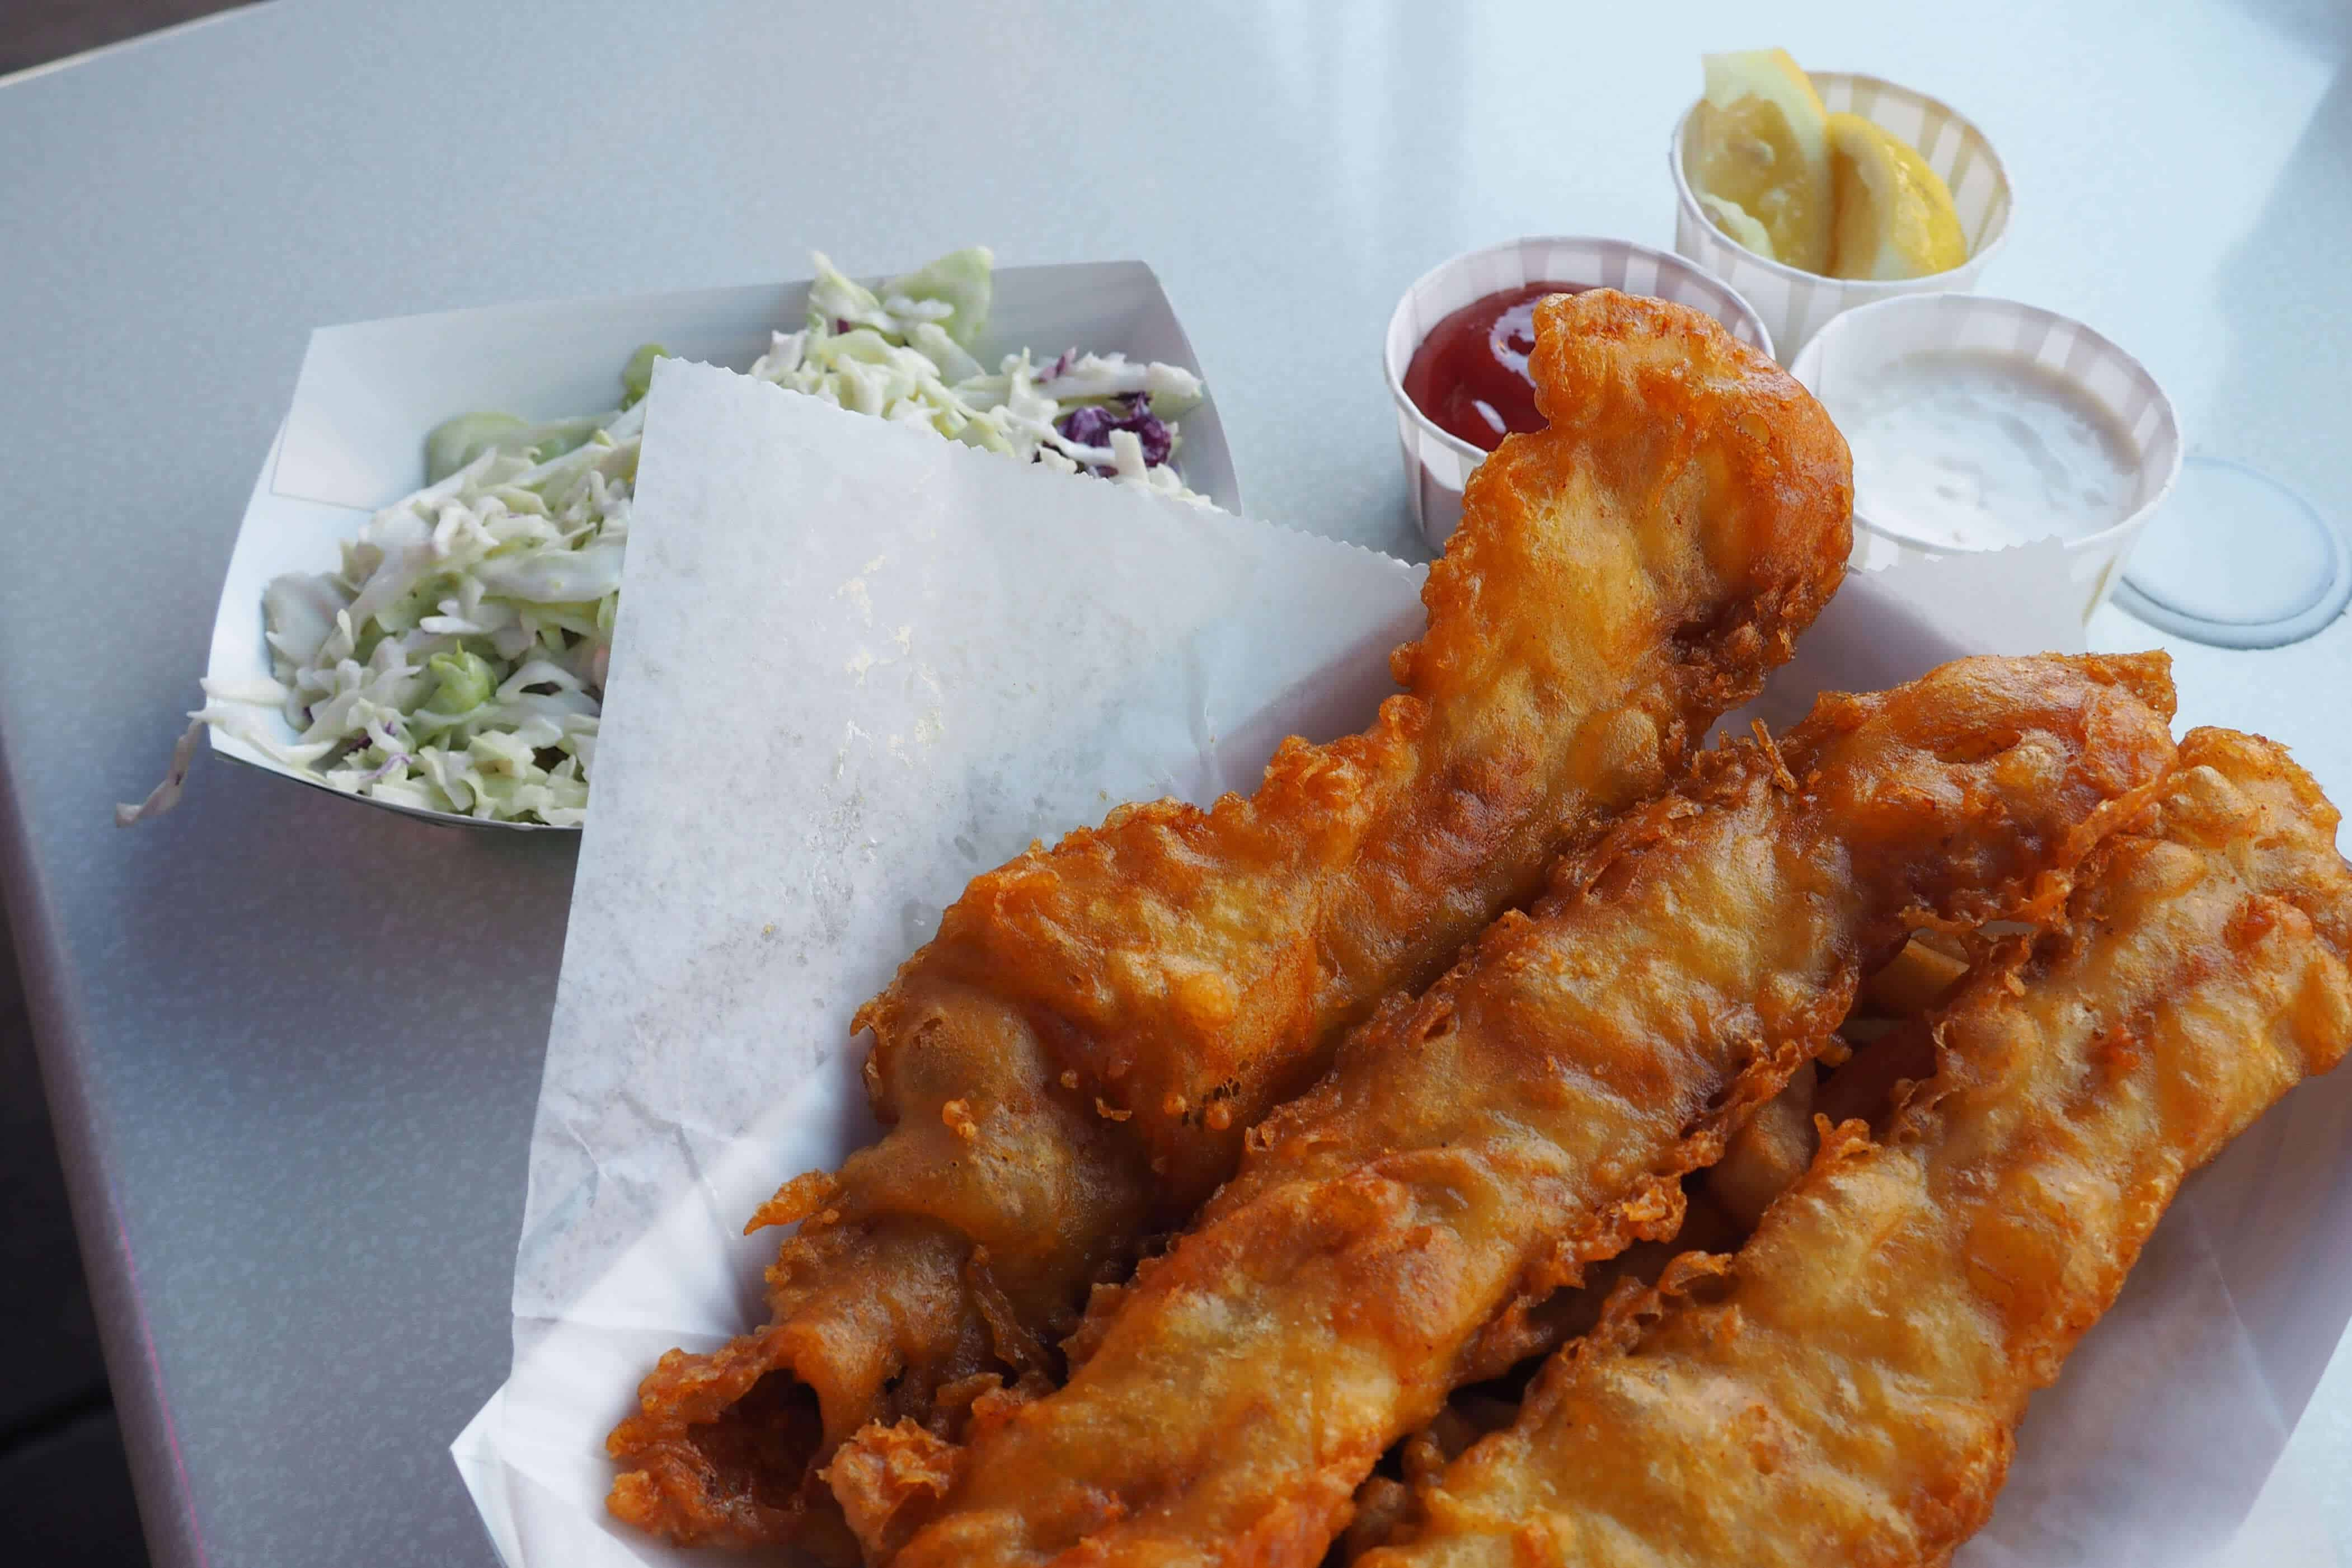 Harbor Fish & Chips Fish Basket with Coleslaw